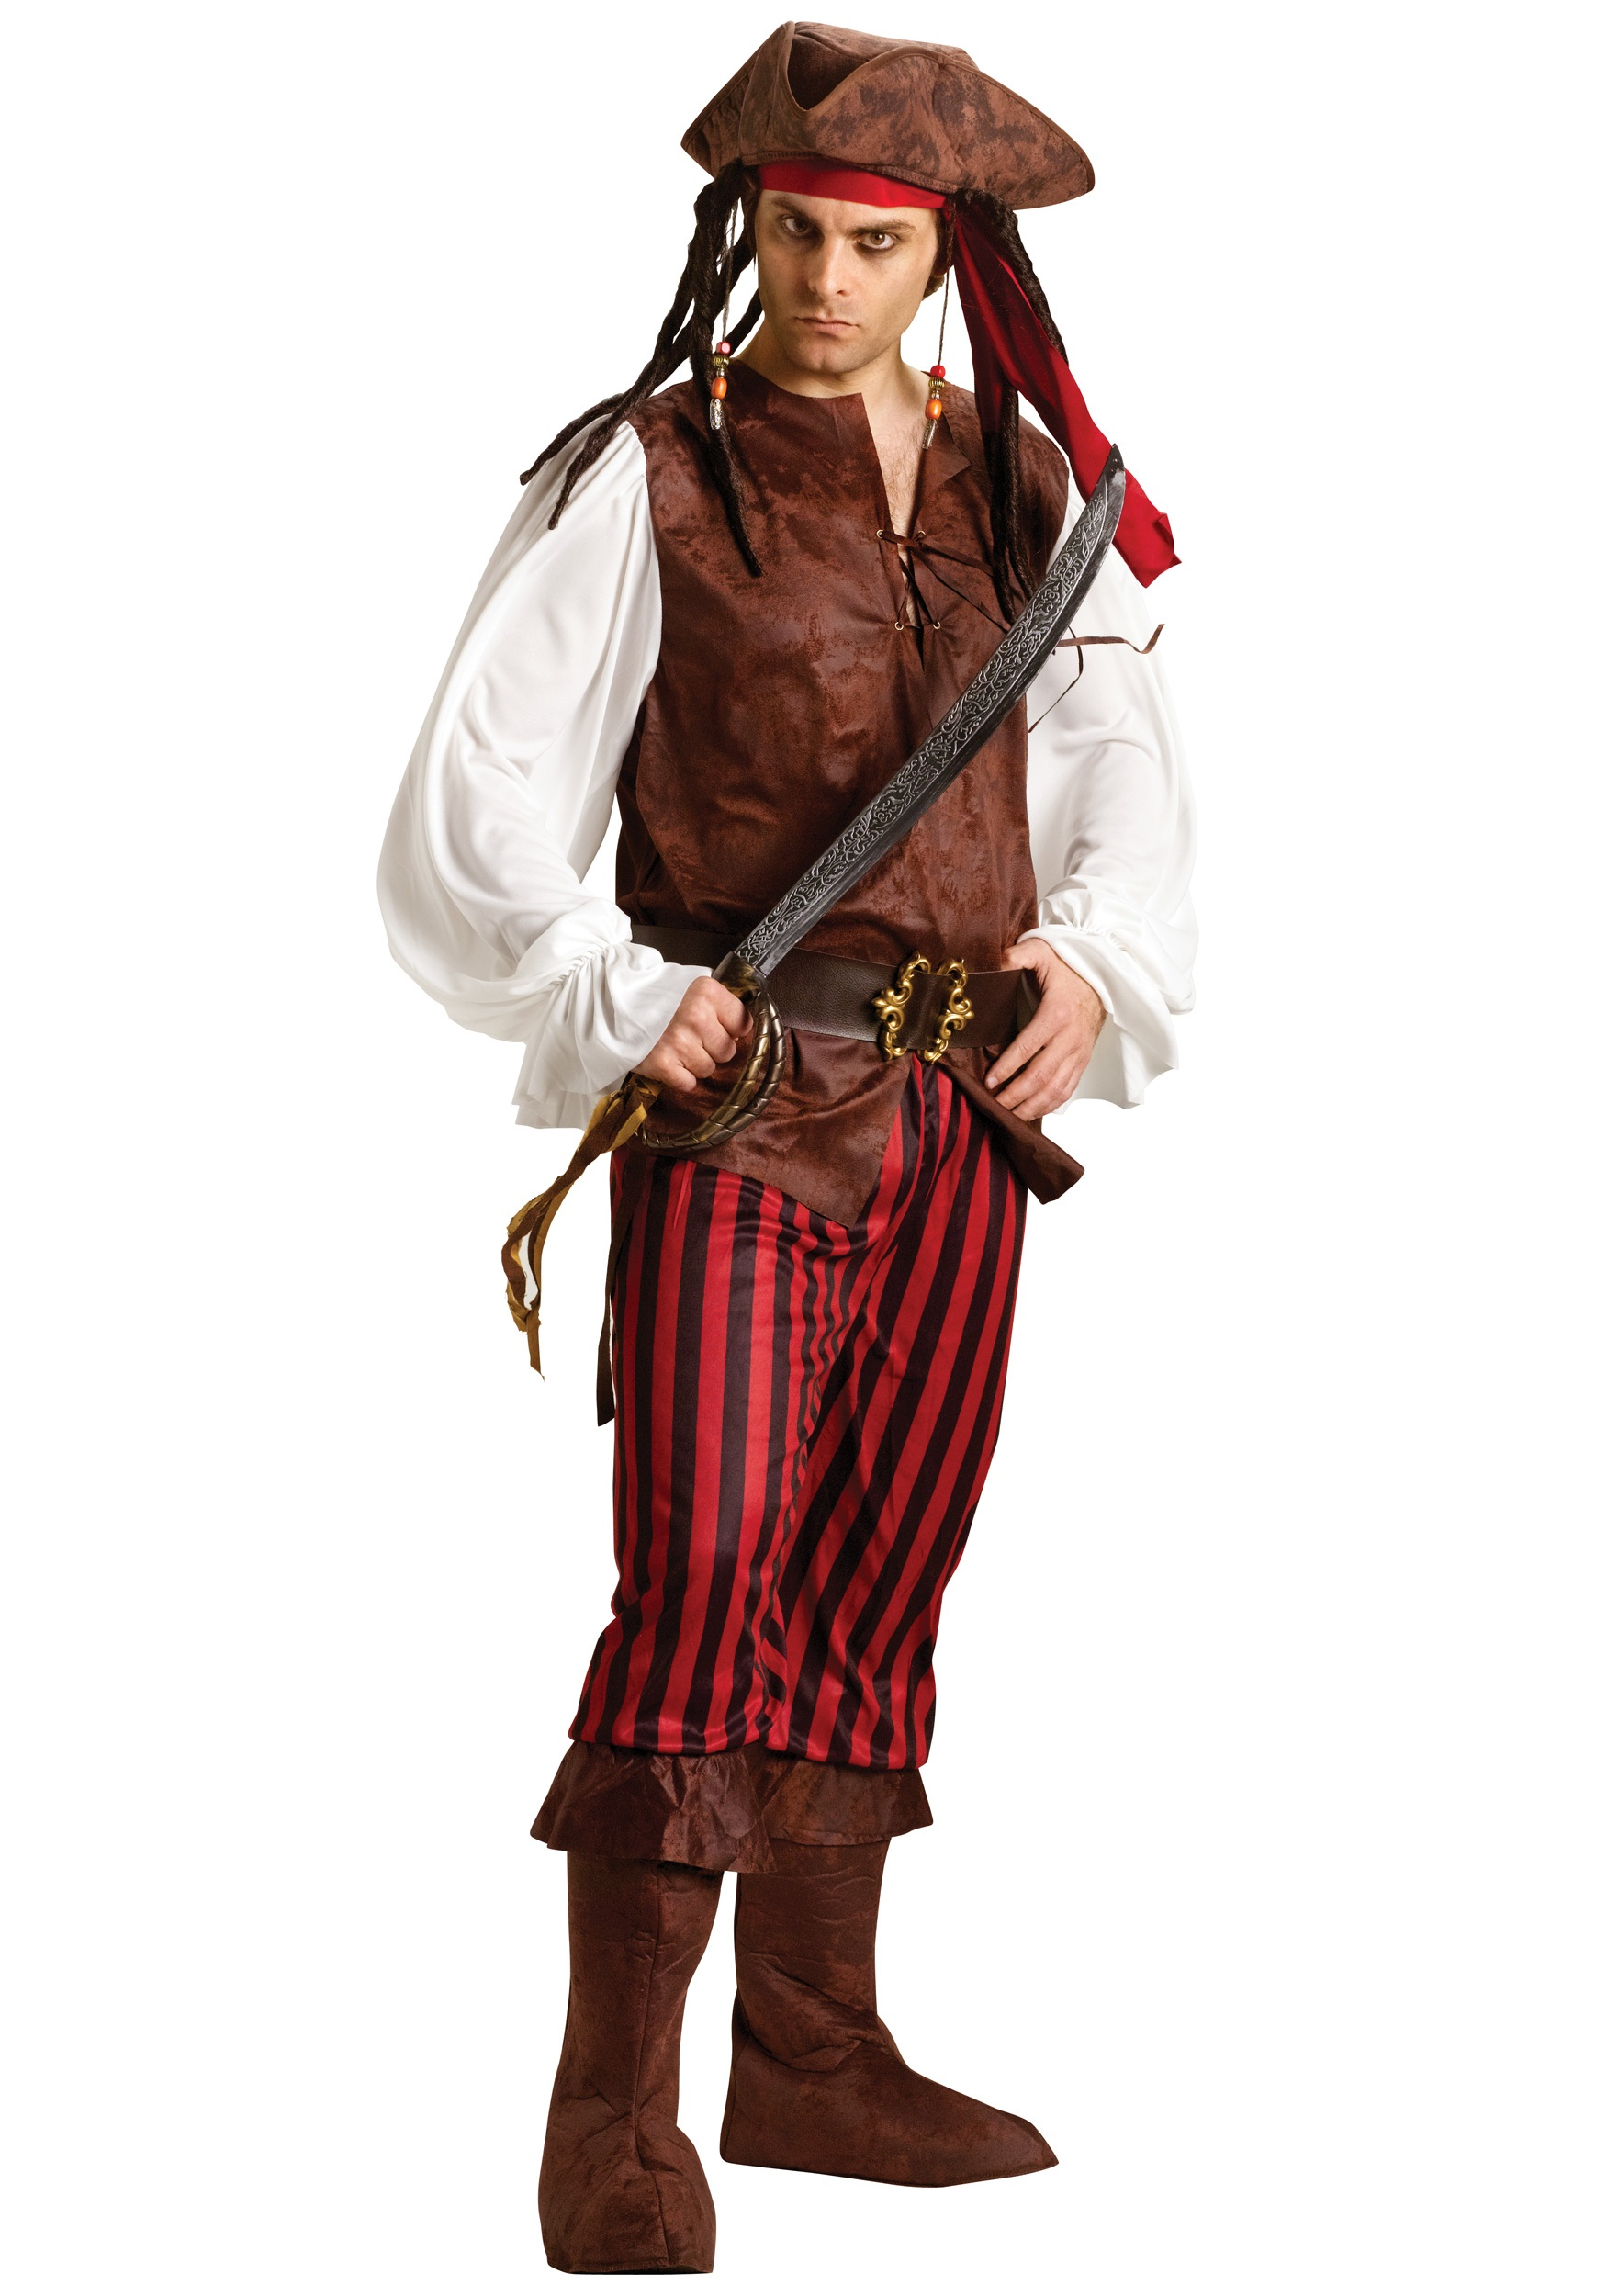 Male Caribbean Pirate Costume  sc 1 st  Halloween Costumes & Male Caribbean Pirate Costume - Halloween Costumes